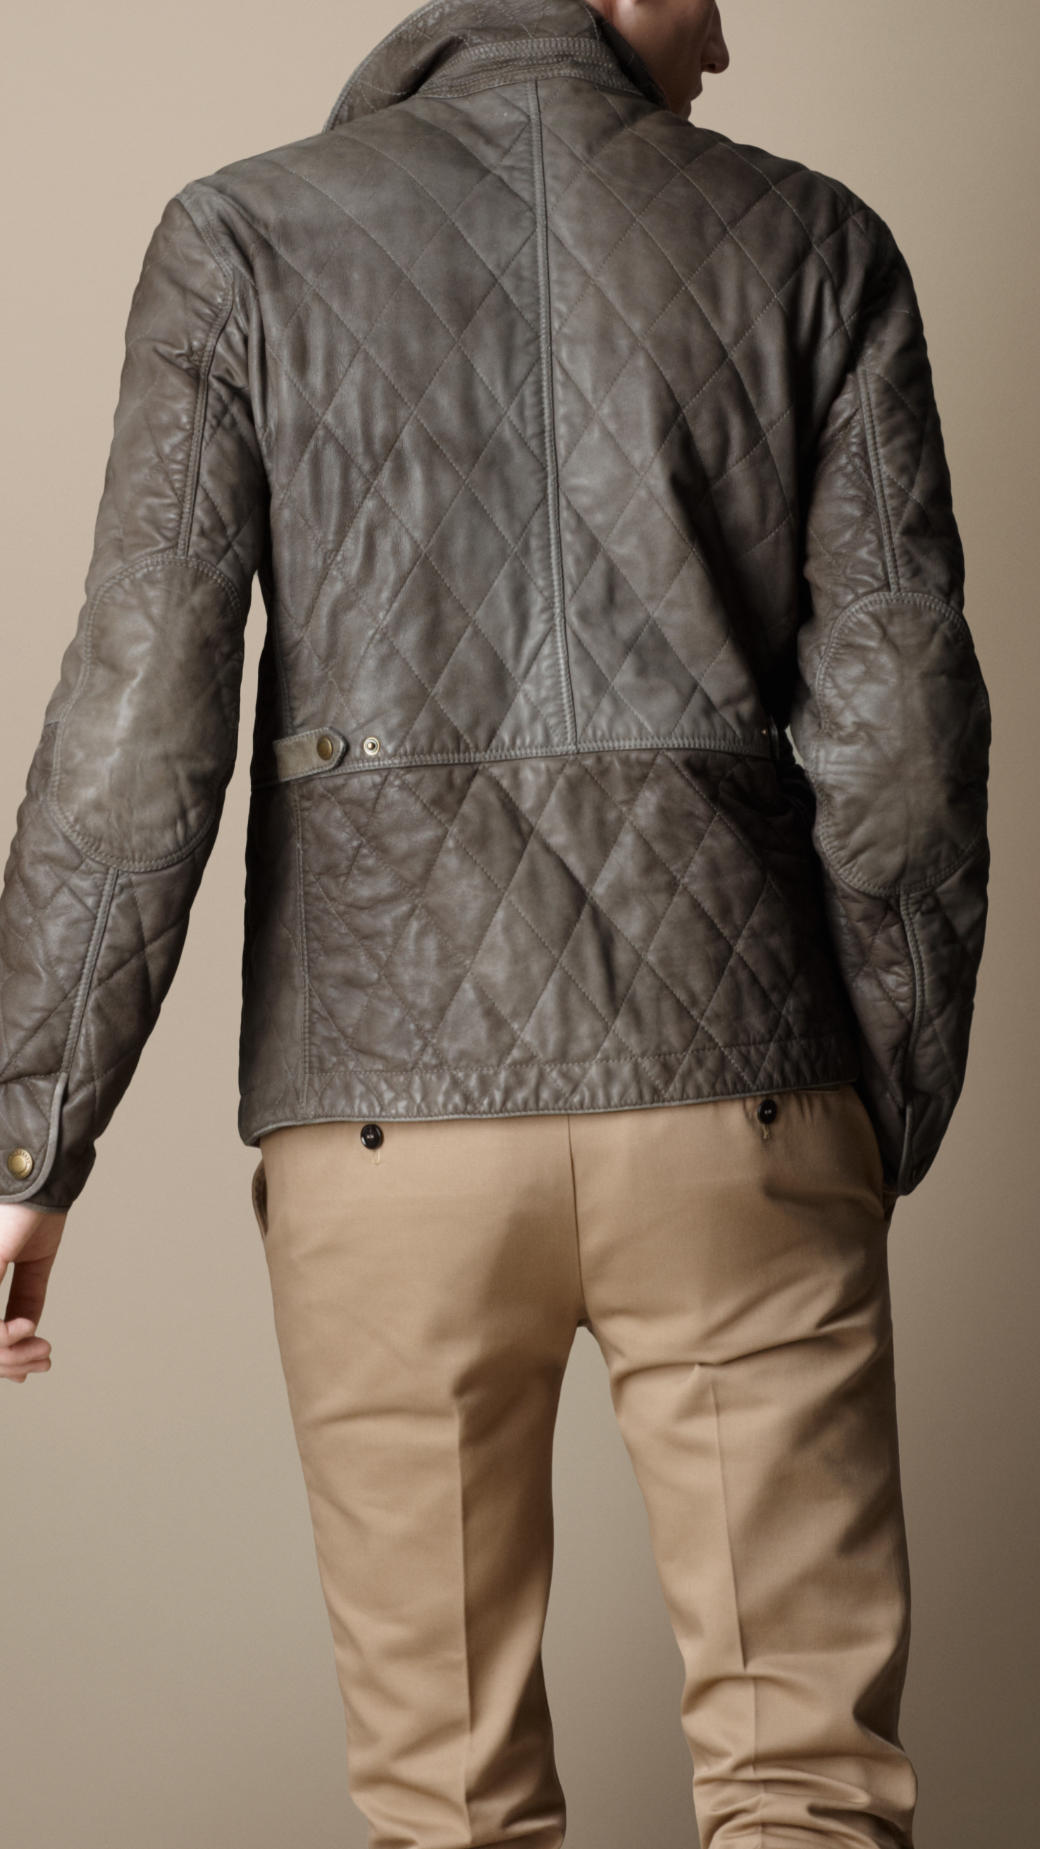 Lyst Burberry Diamond Quilted Leather Jacket In Brown